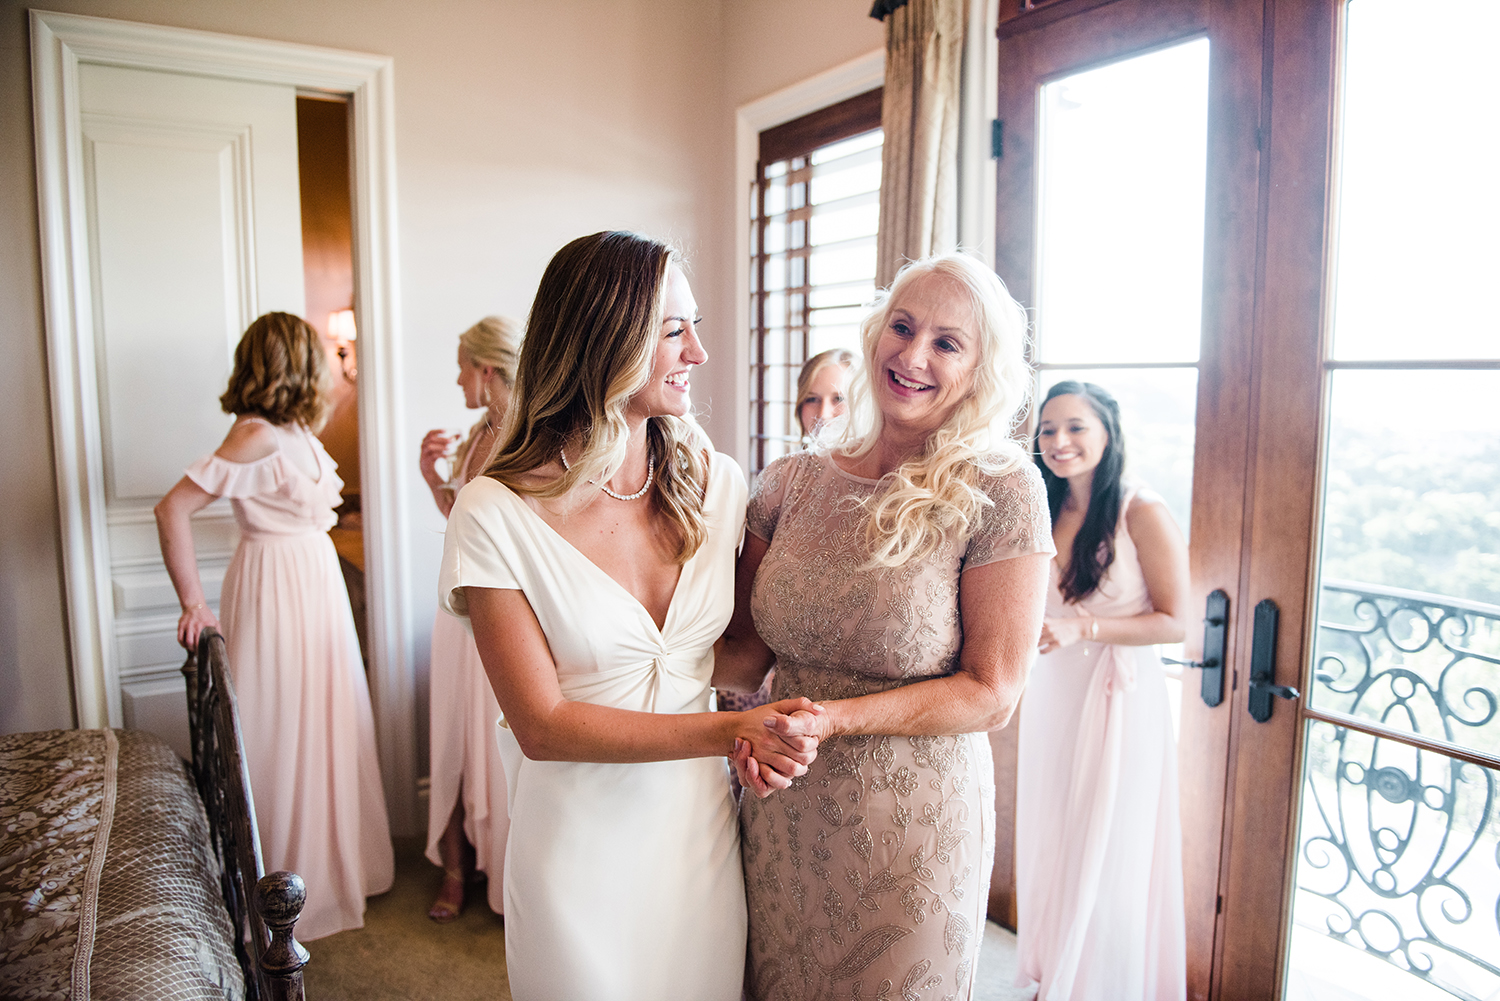 livvyland-blog-olivia-watson-wedding-villa-del-lago-austin-texas-fall-blush-burgundy-classic-romantic-mother-daughter